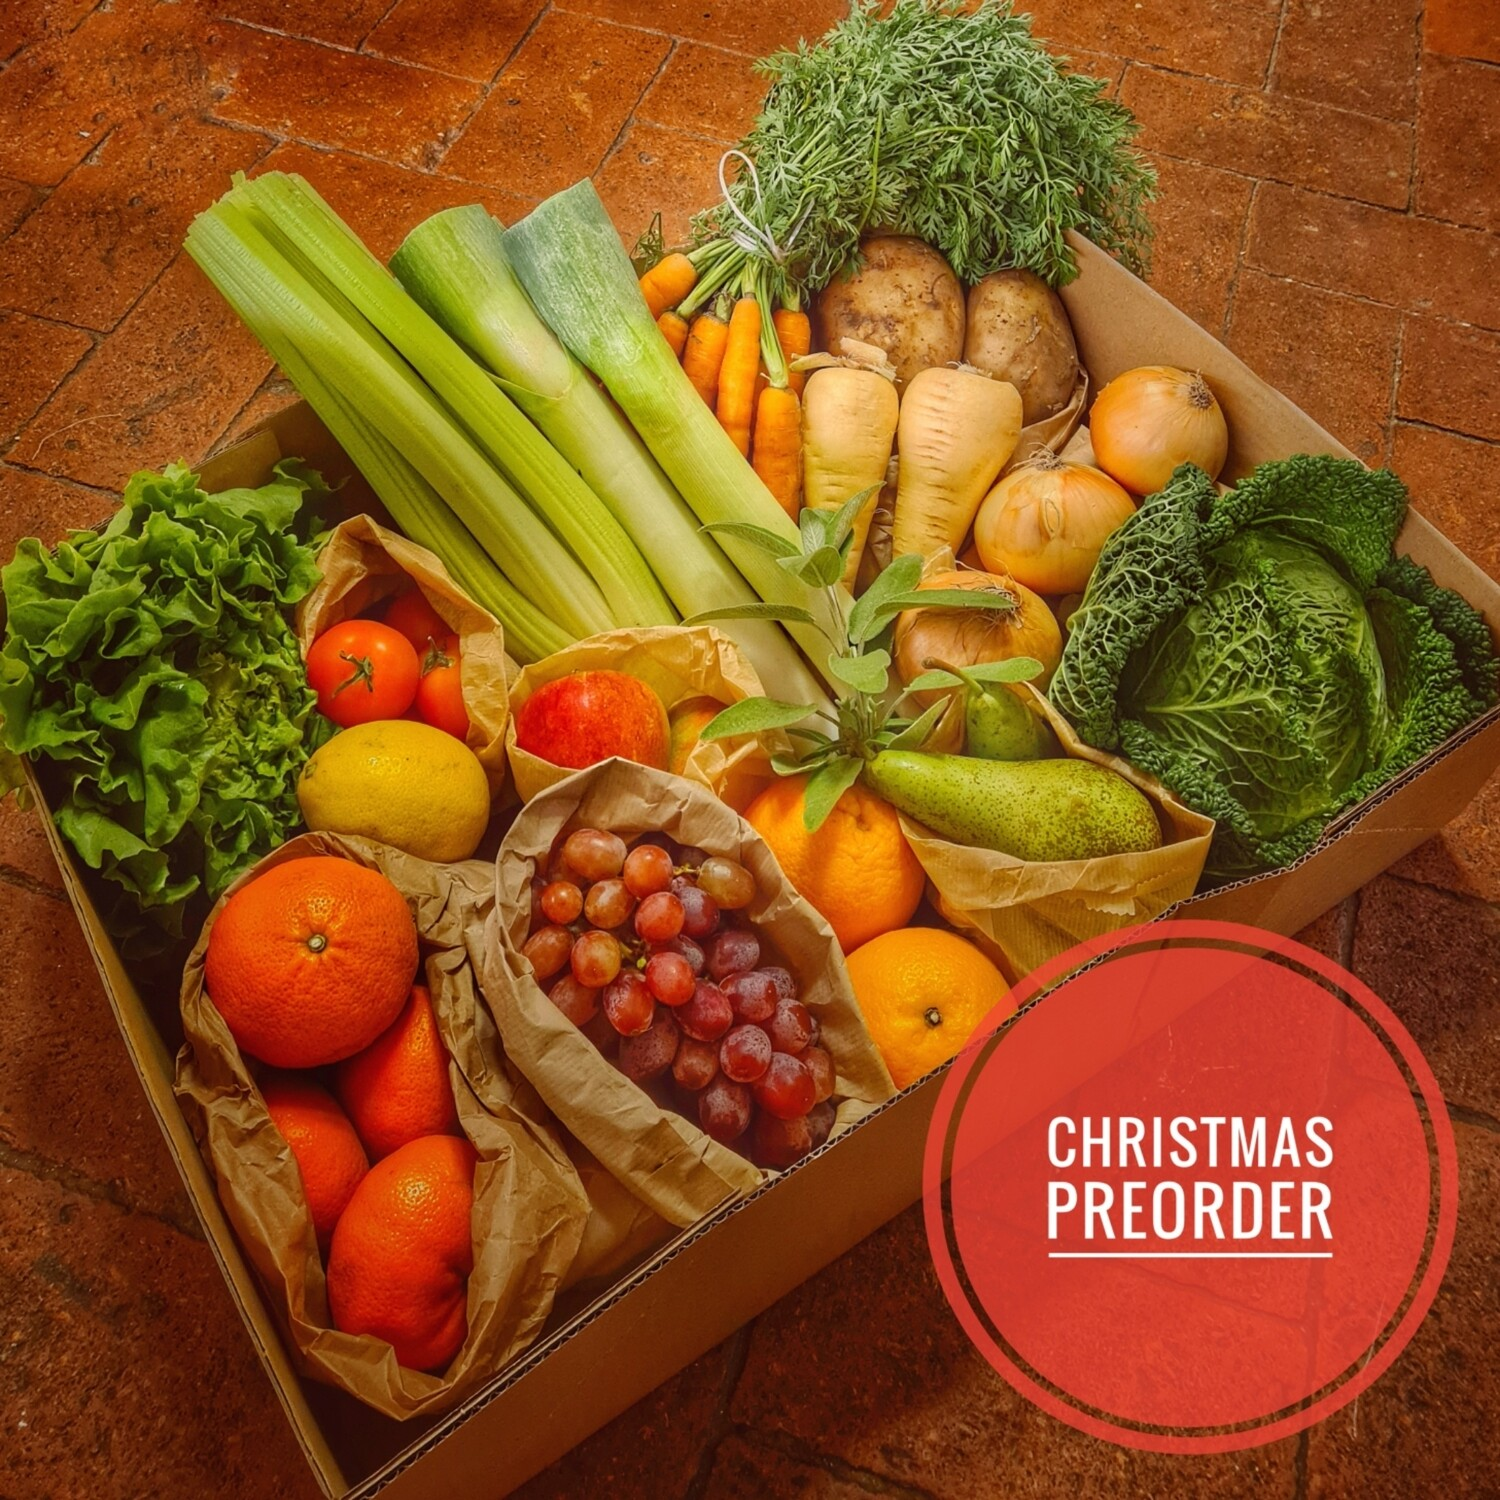 Preorder Greengrocers Christmas Selection Hamper